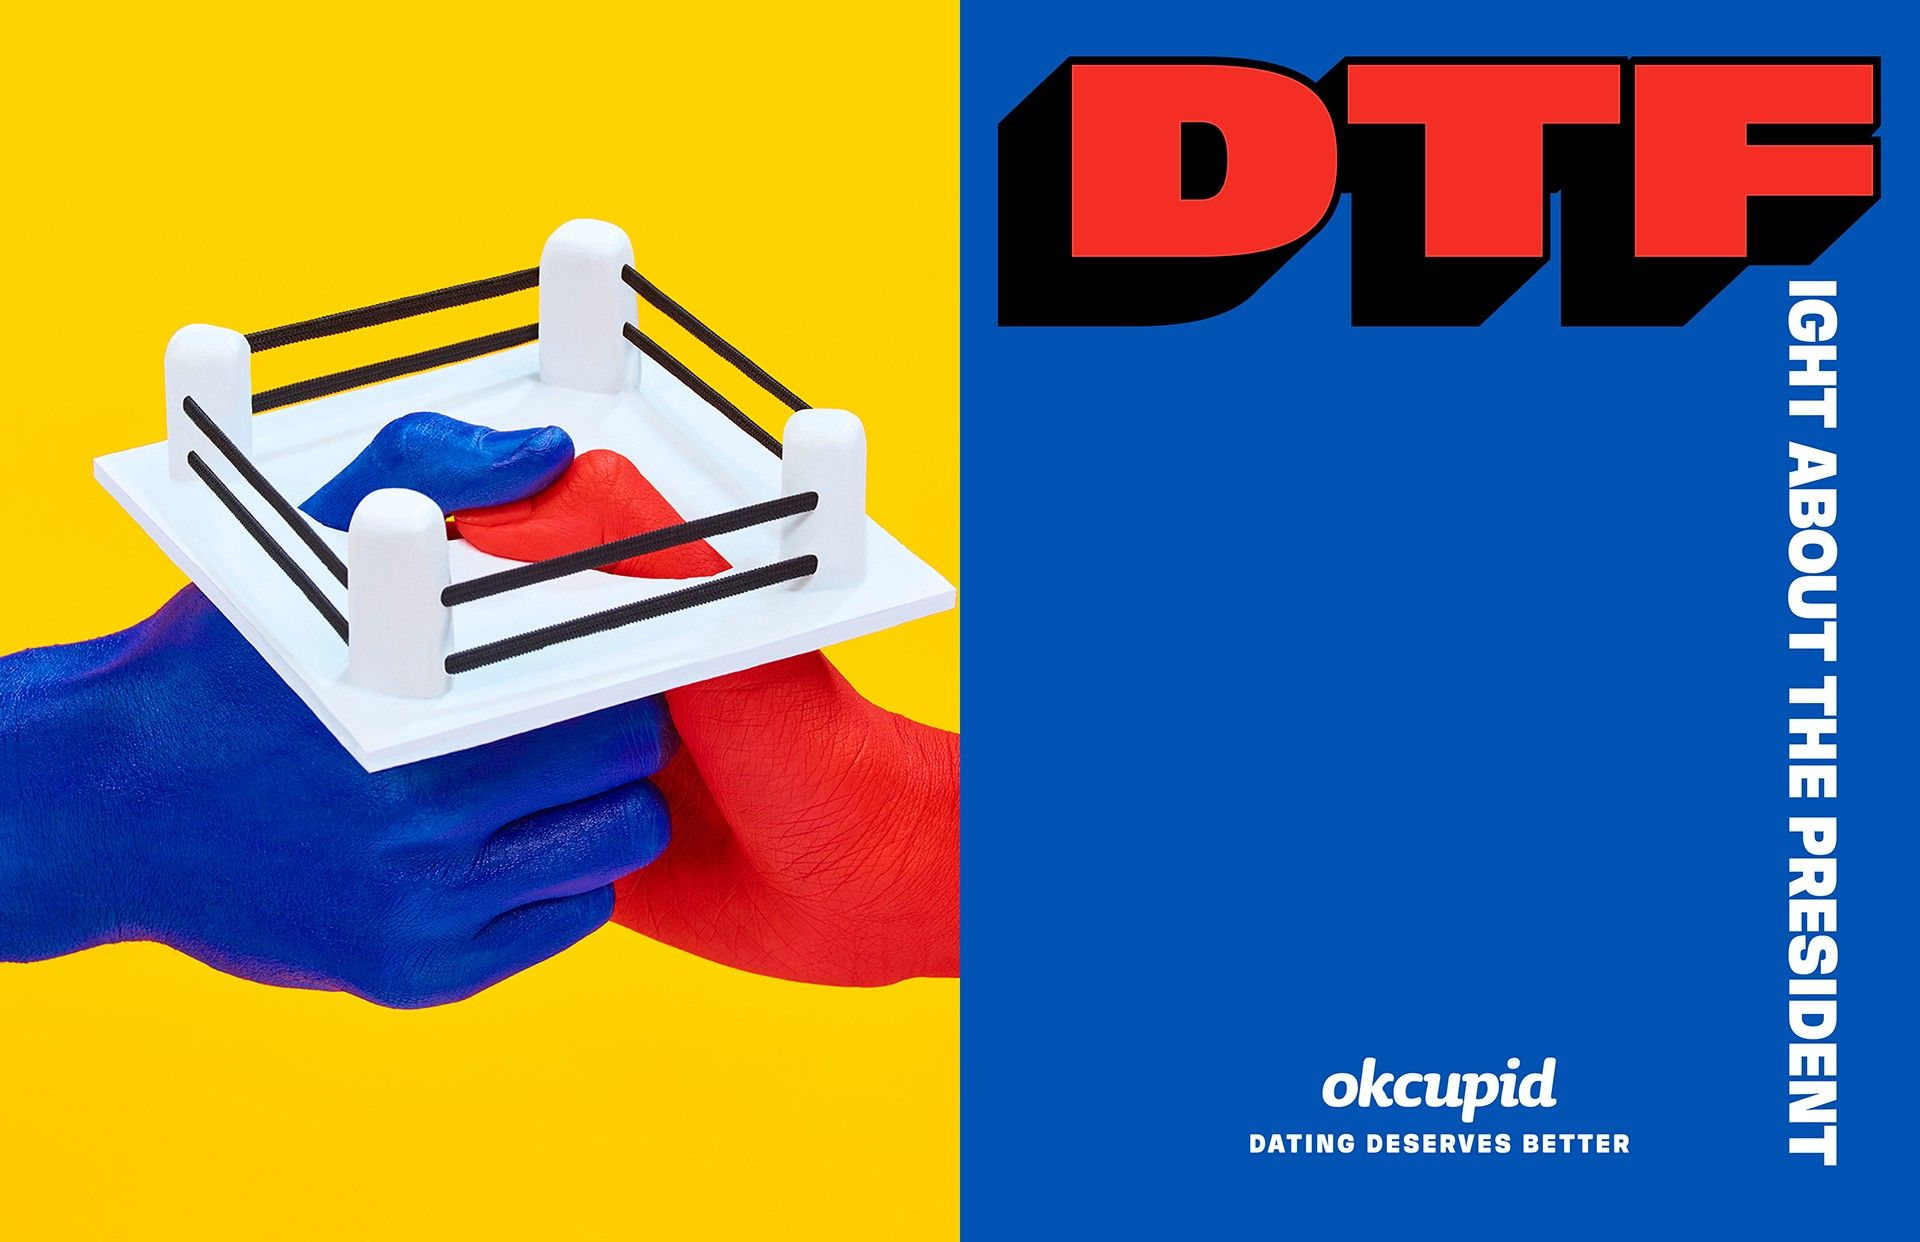 More images from our DTF campaign revealed The OkCupid